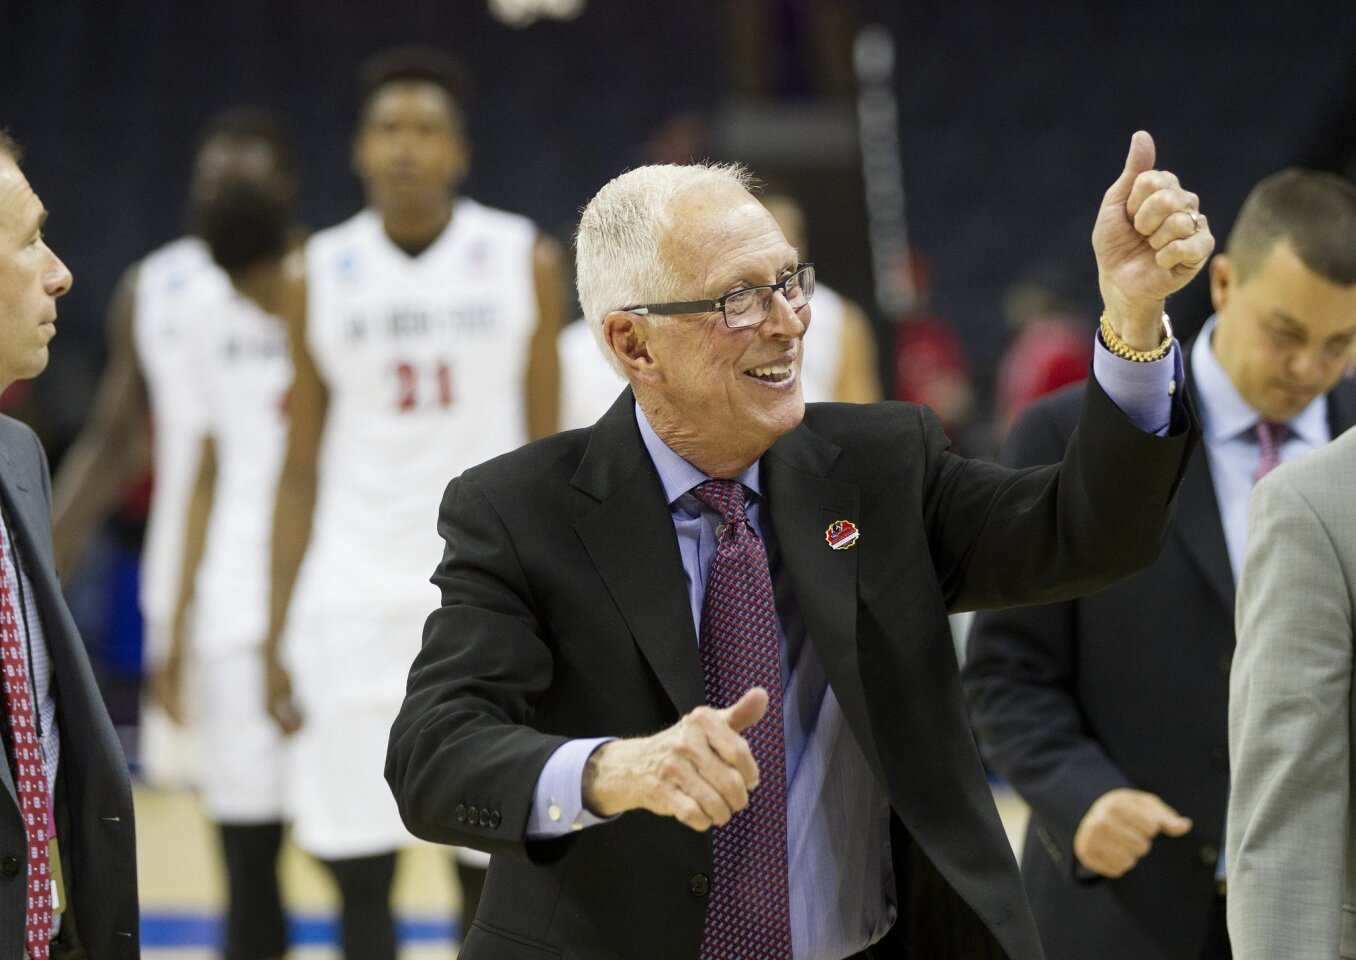 SDSU vs St. John's Mens Basketball in the second round of the NCAA Mens Basketball Tournament. SDSU Head Coach Steve Fisher gives Aztec fans the thumbs up after defeating St. John's 76-64 to advance to the next round where they will play Duke.